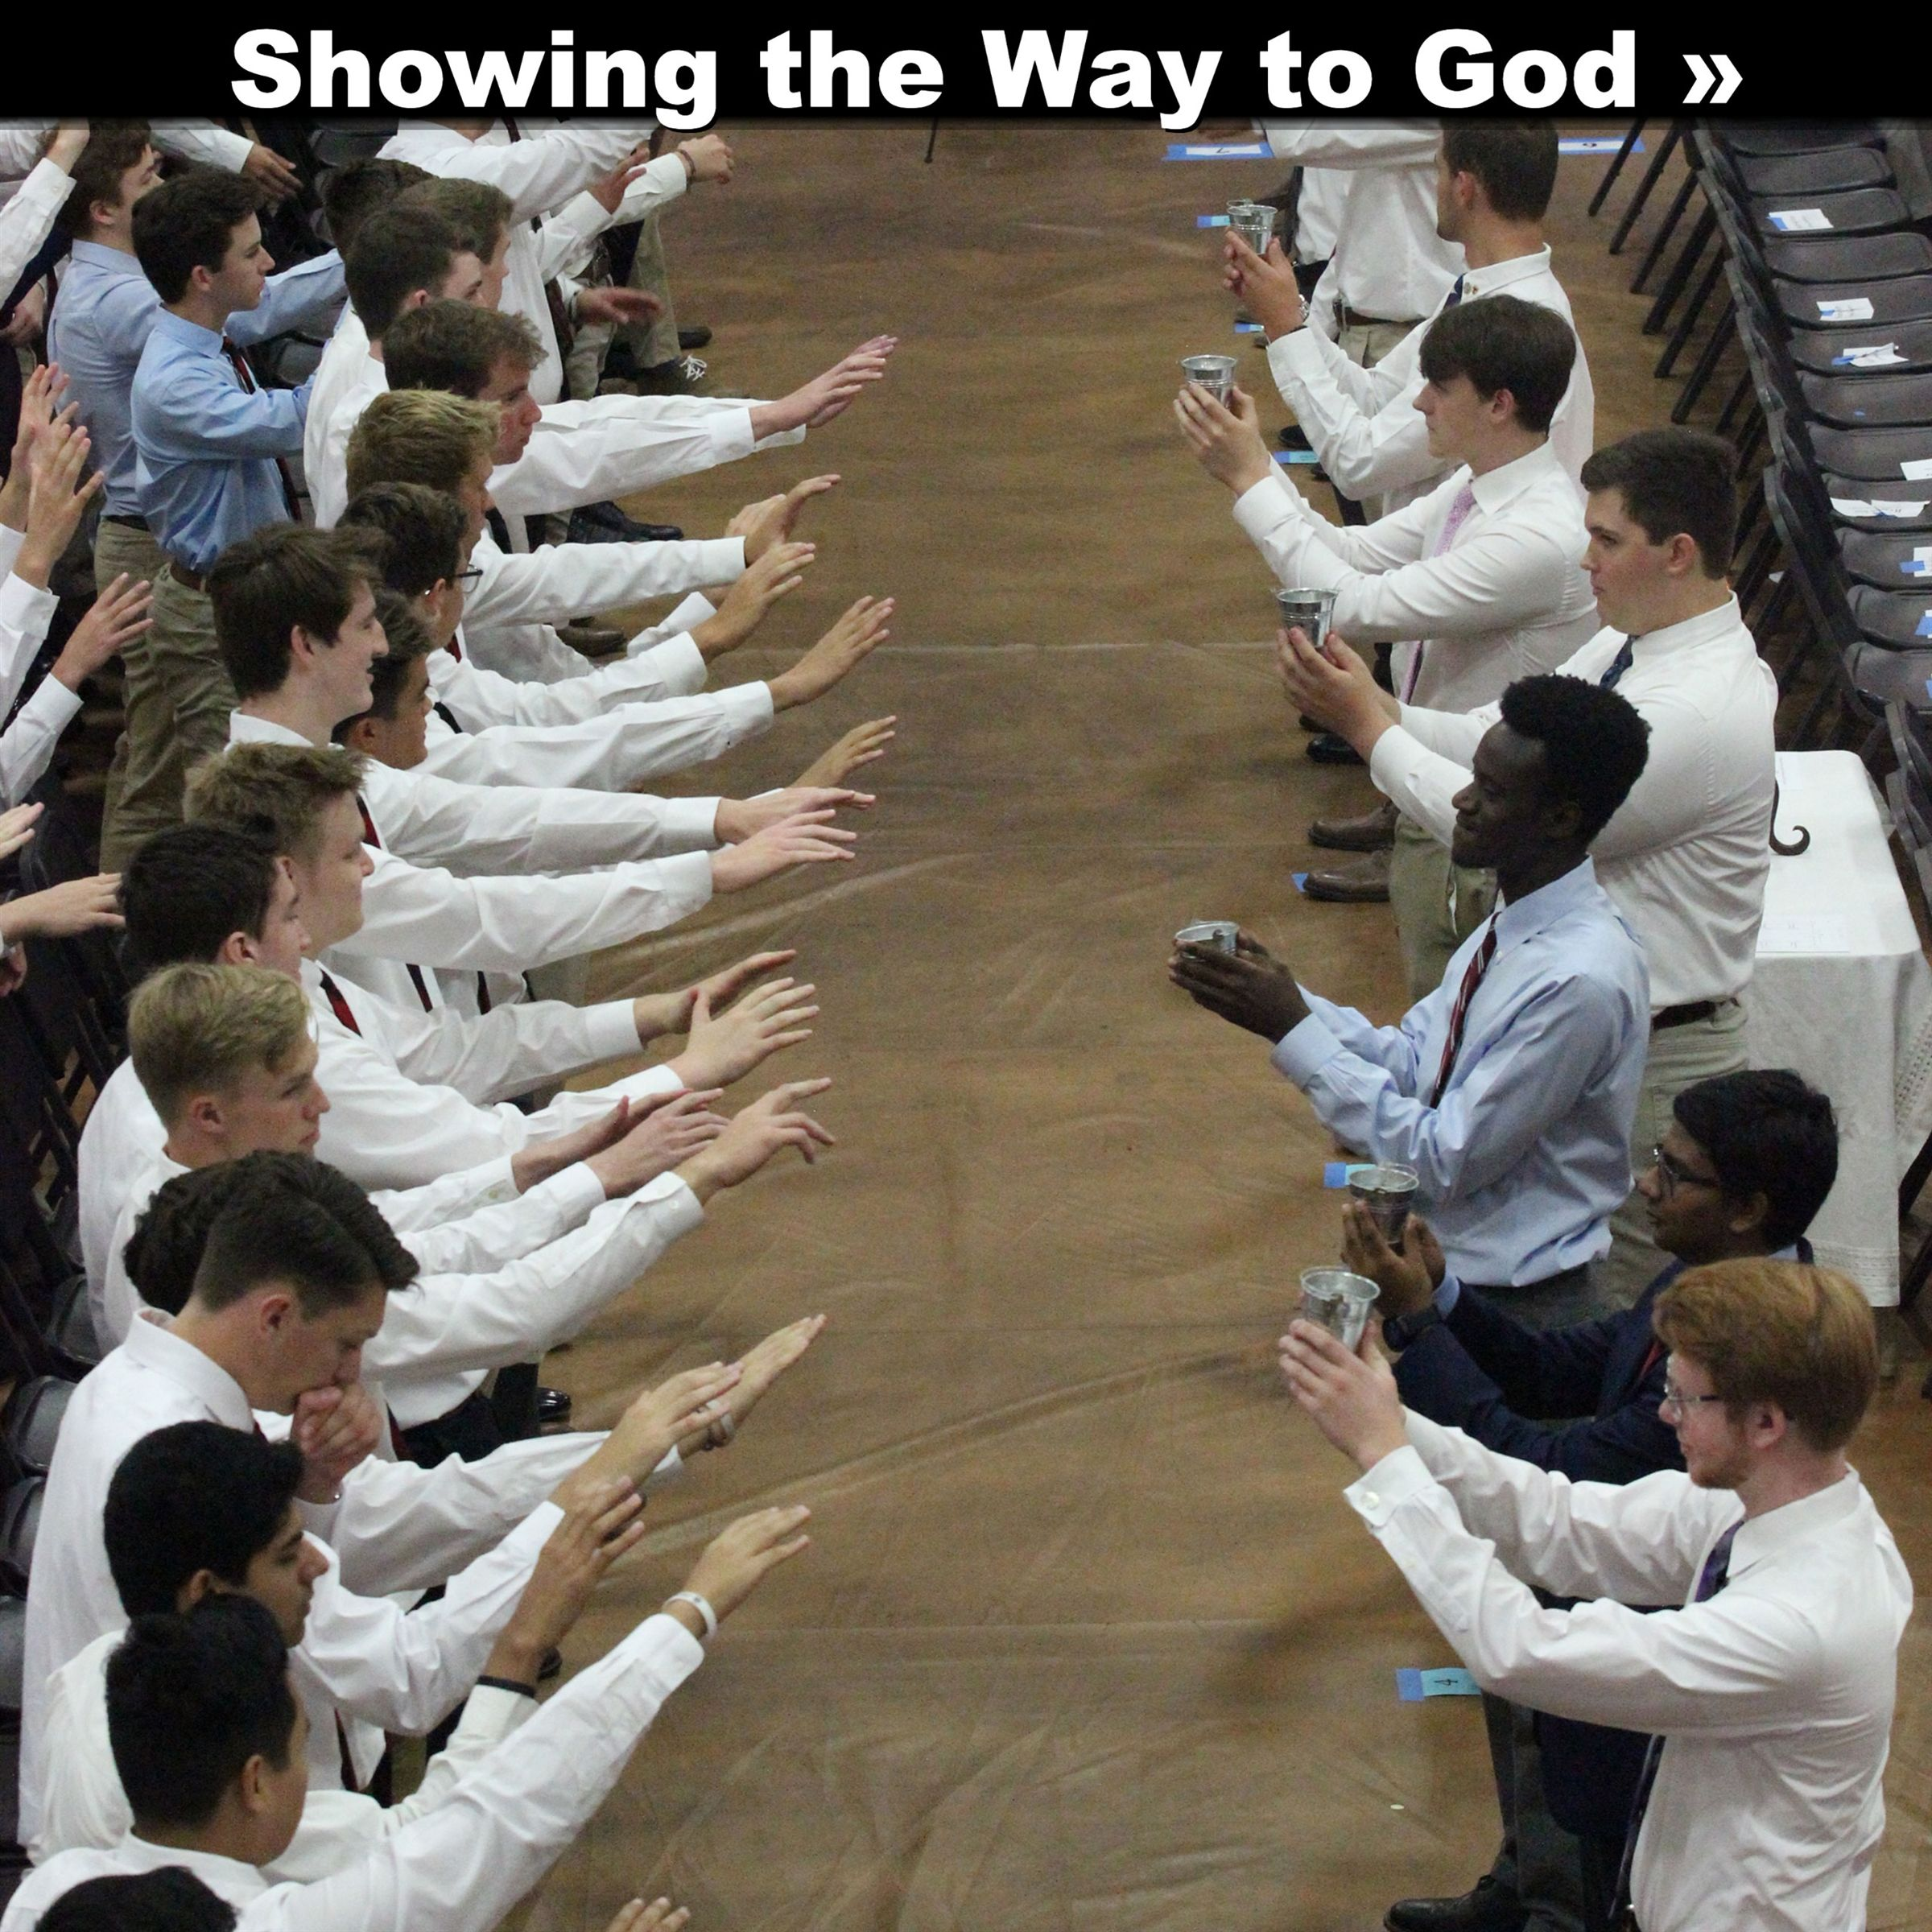 Showing the Way to God